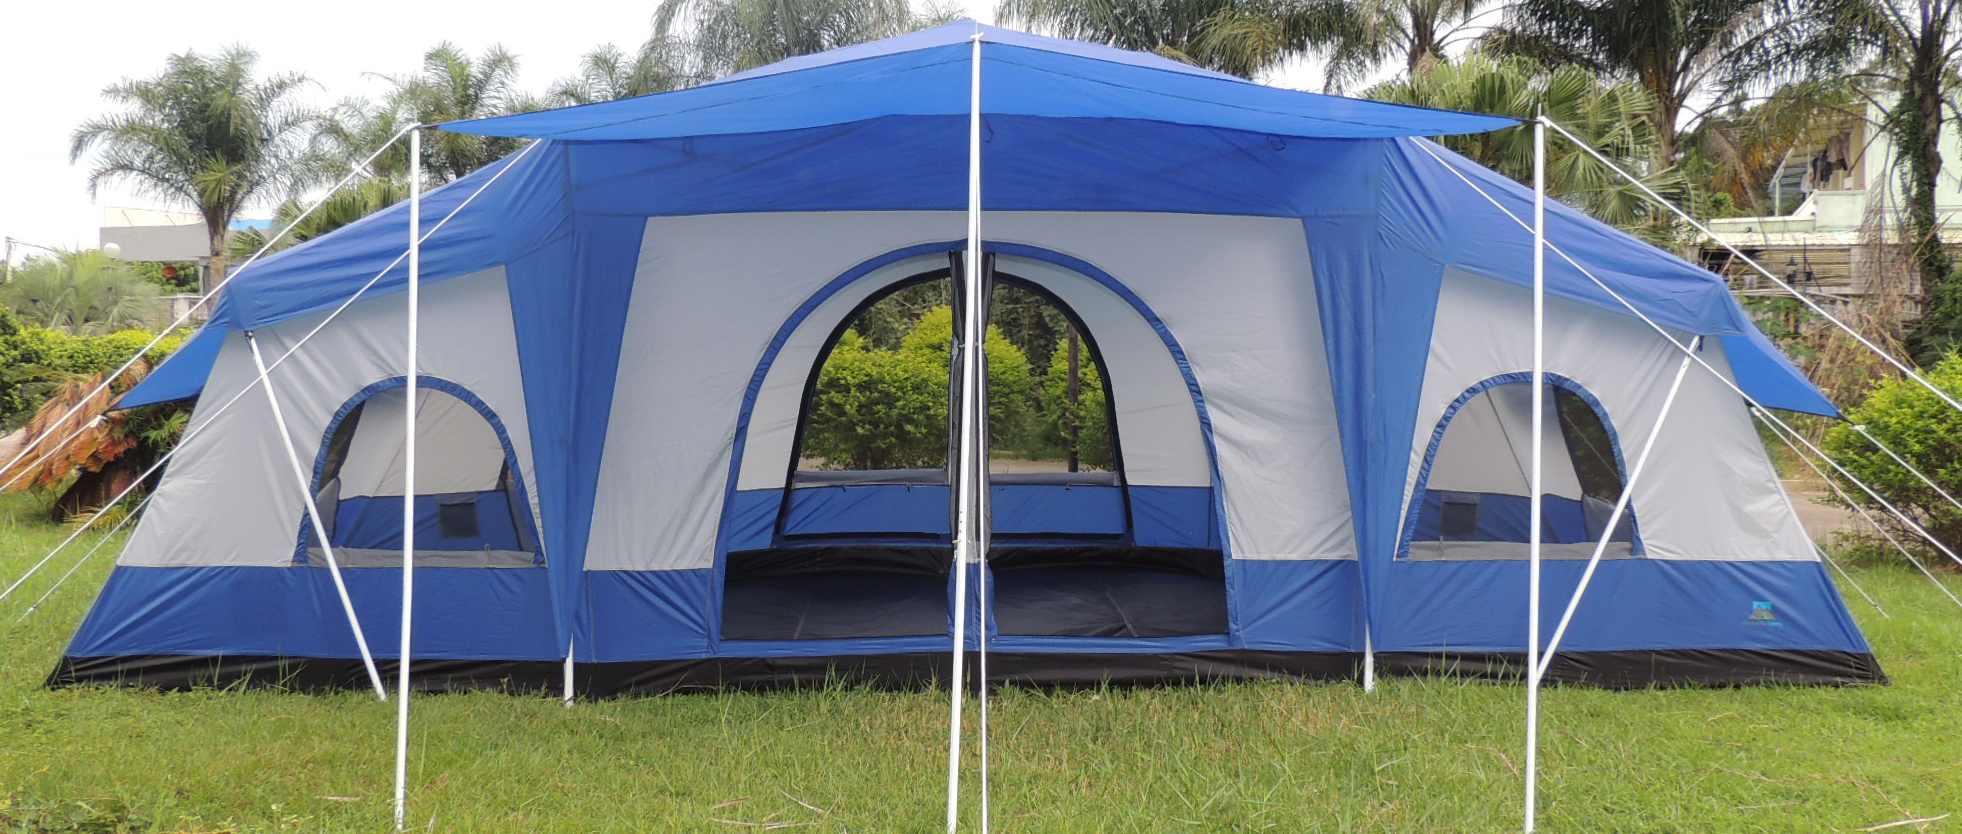 Cabin-Tent-Deluxe-Four-Room-Front-View ... : big tents for cheap - memphite.com